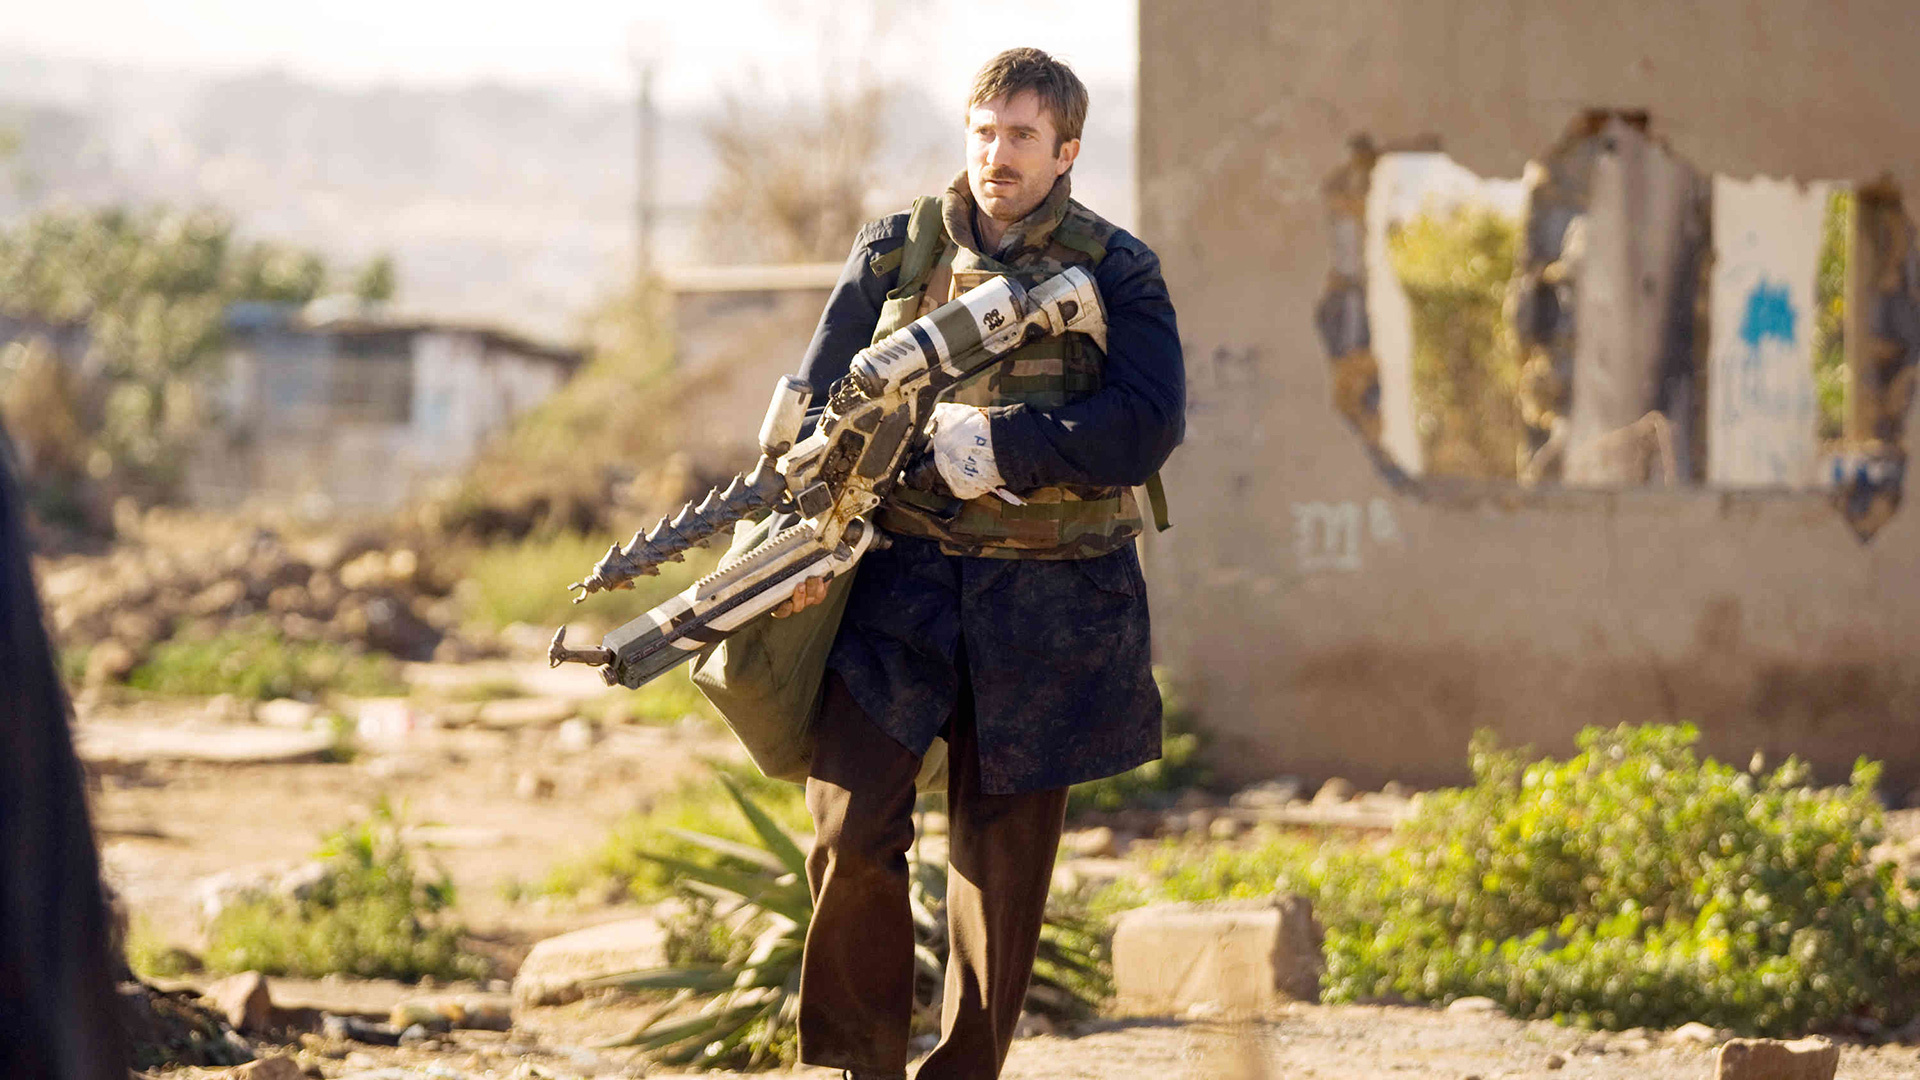 Sharlto Copley undergoes transformation into something alien in District 9 (2009)